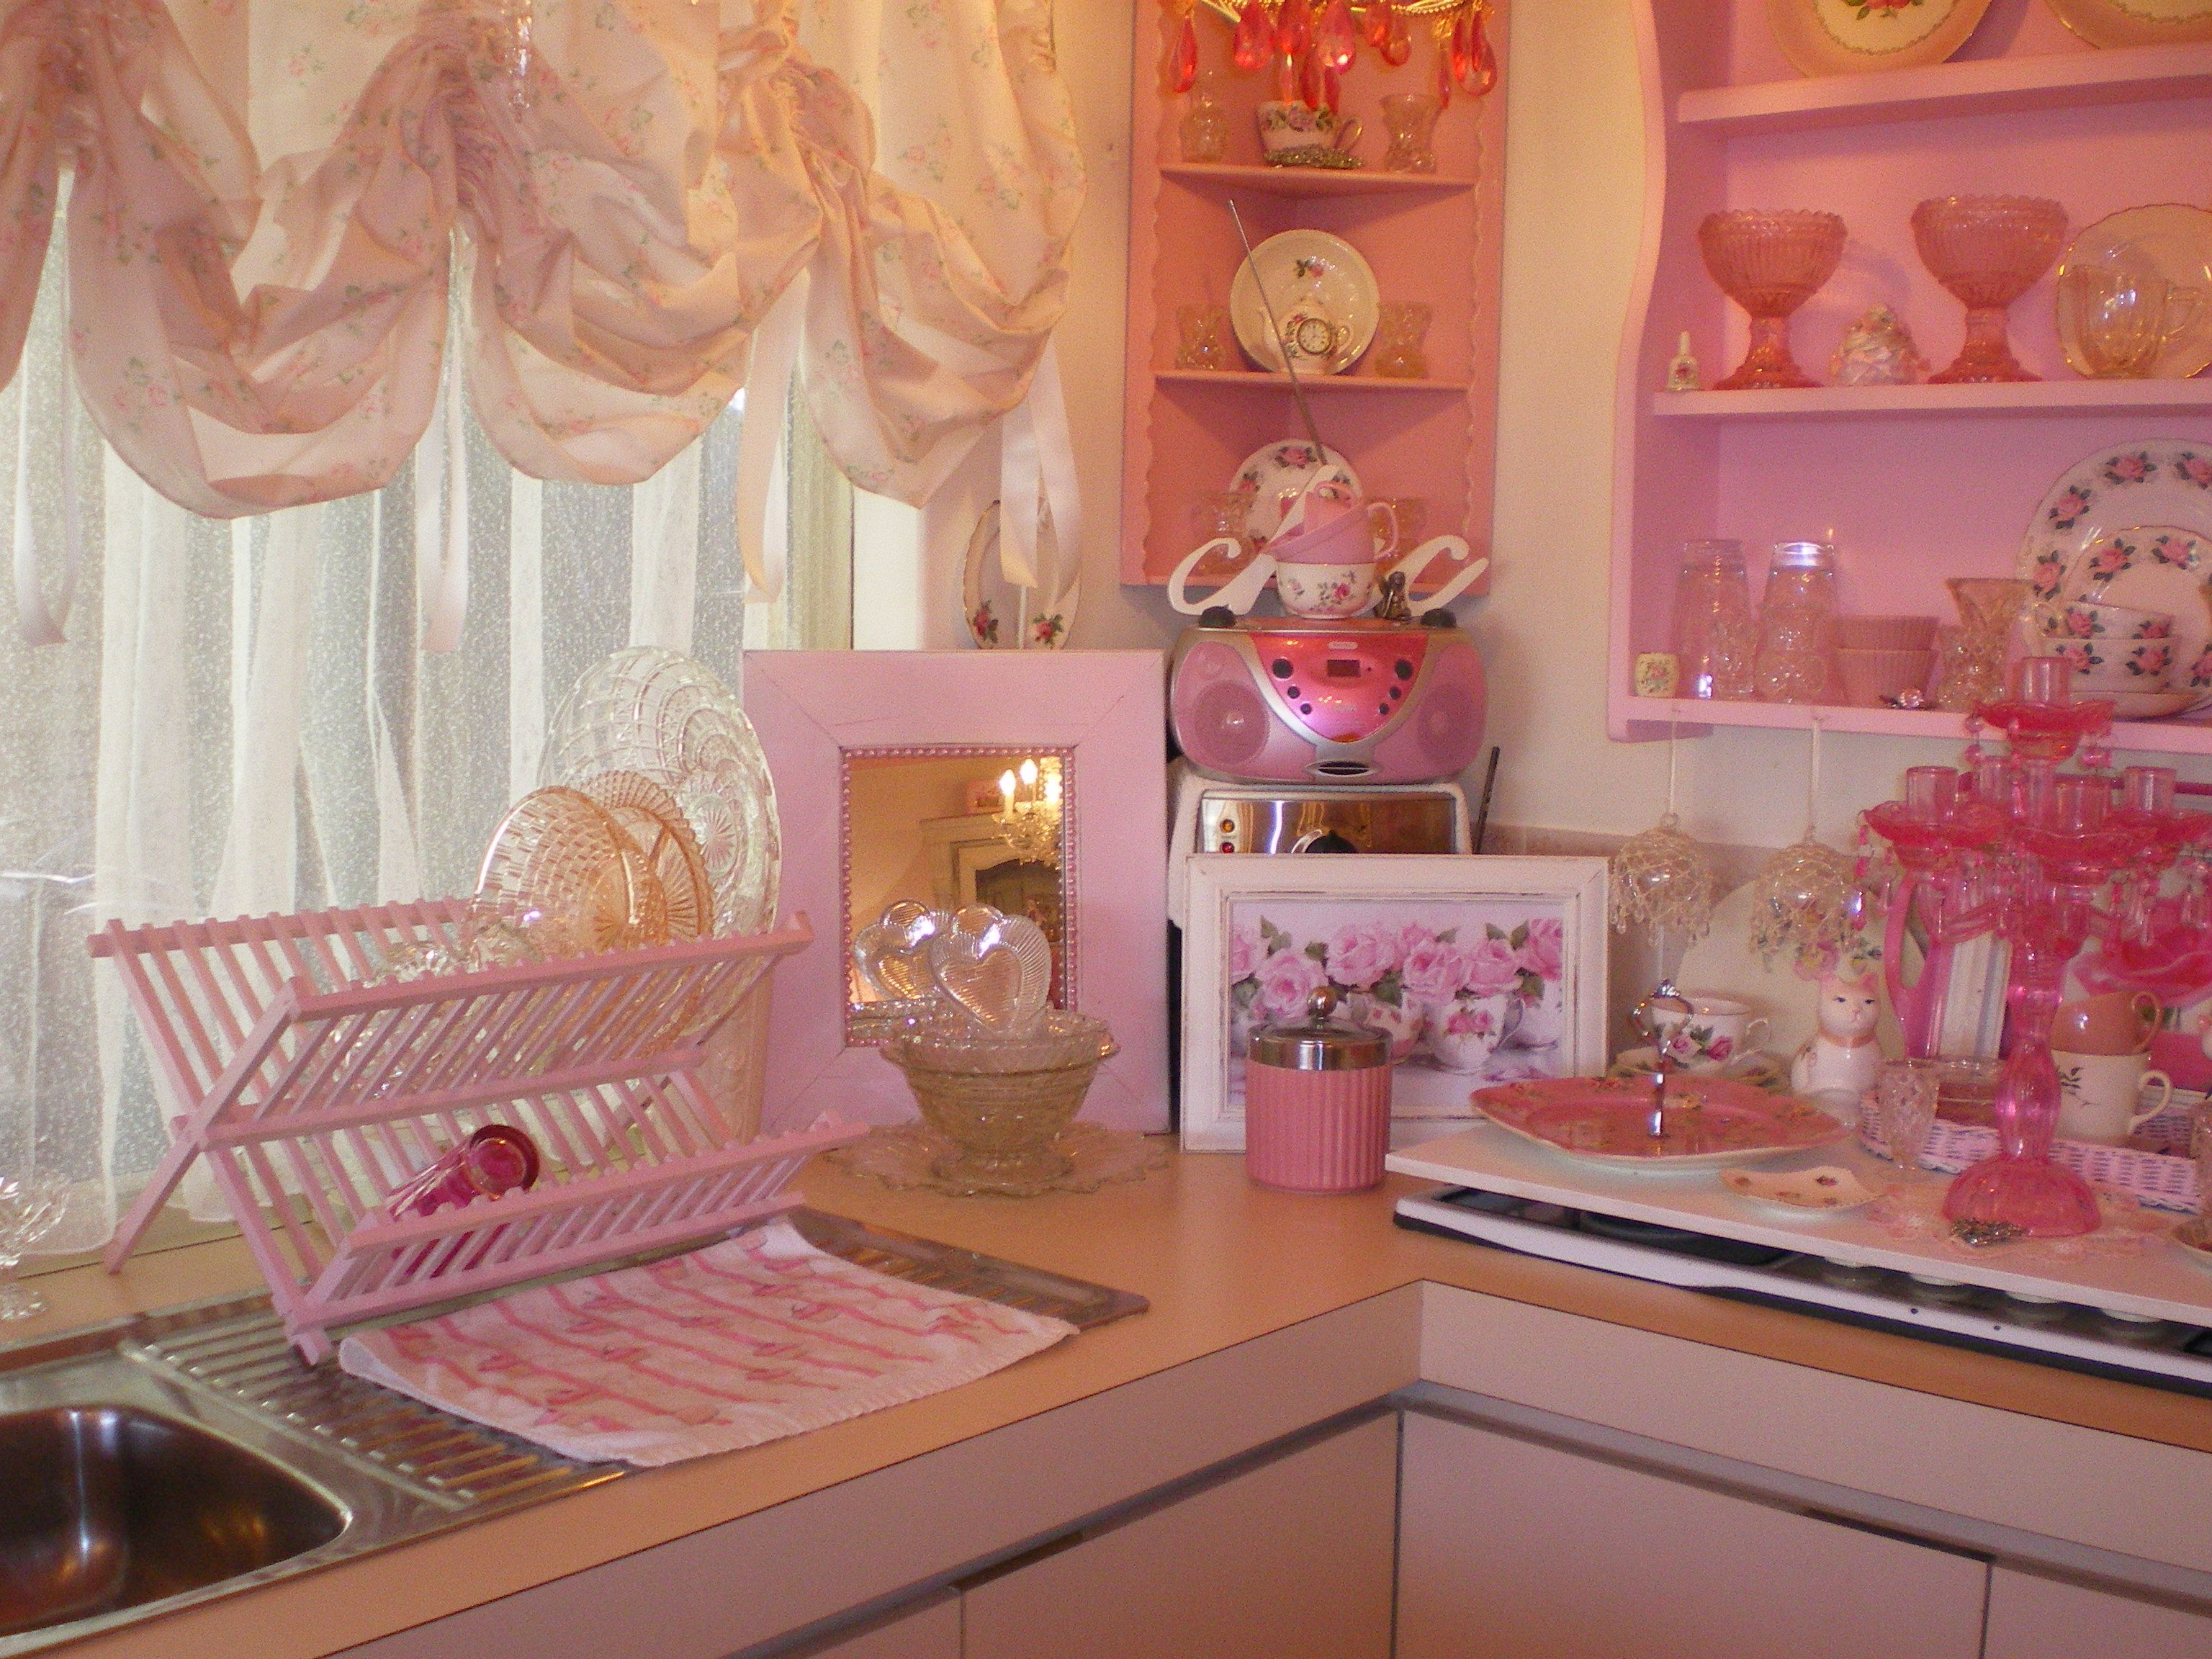 Kim Writes My Pink Kitchen Isnt This Just Darling Shabby Chic